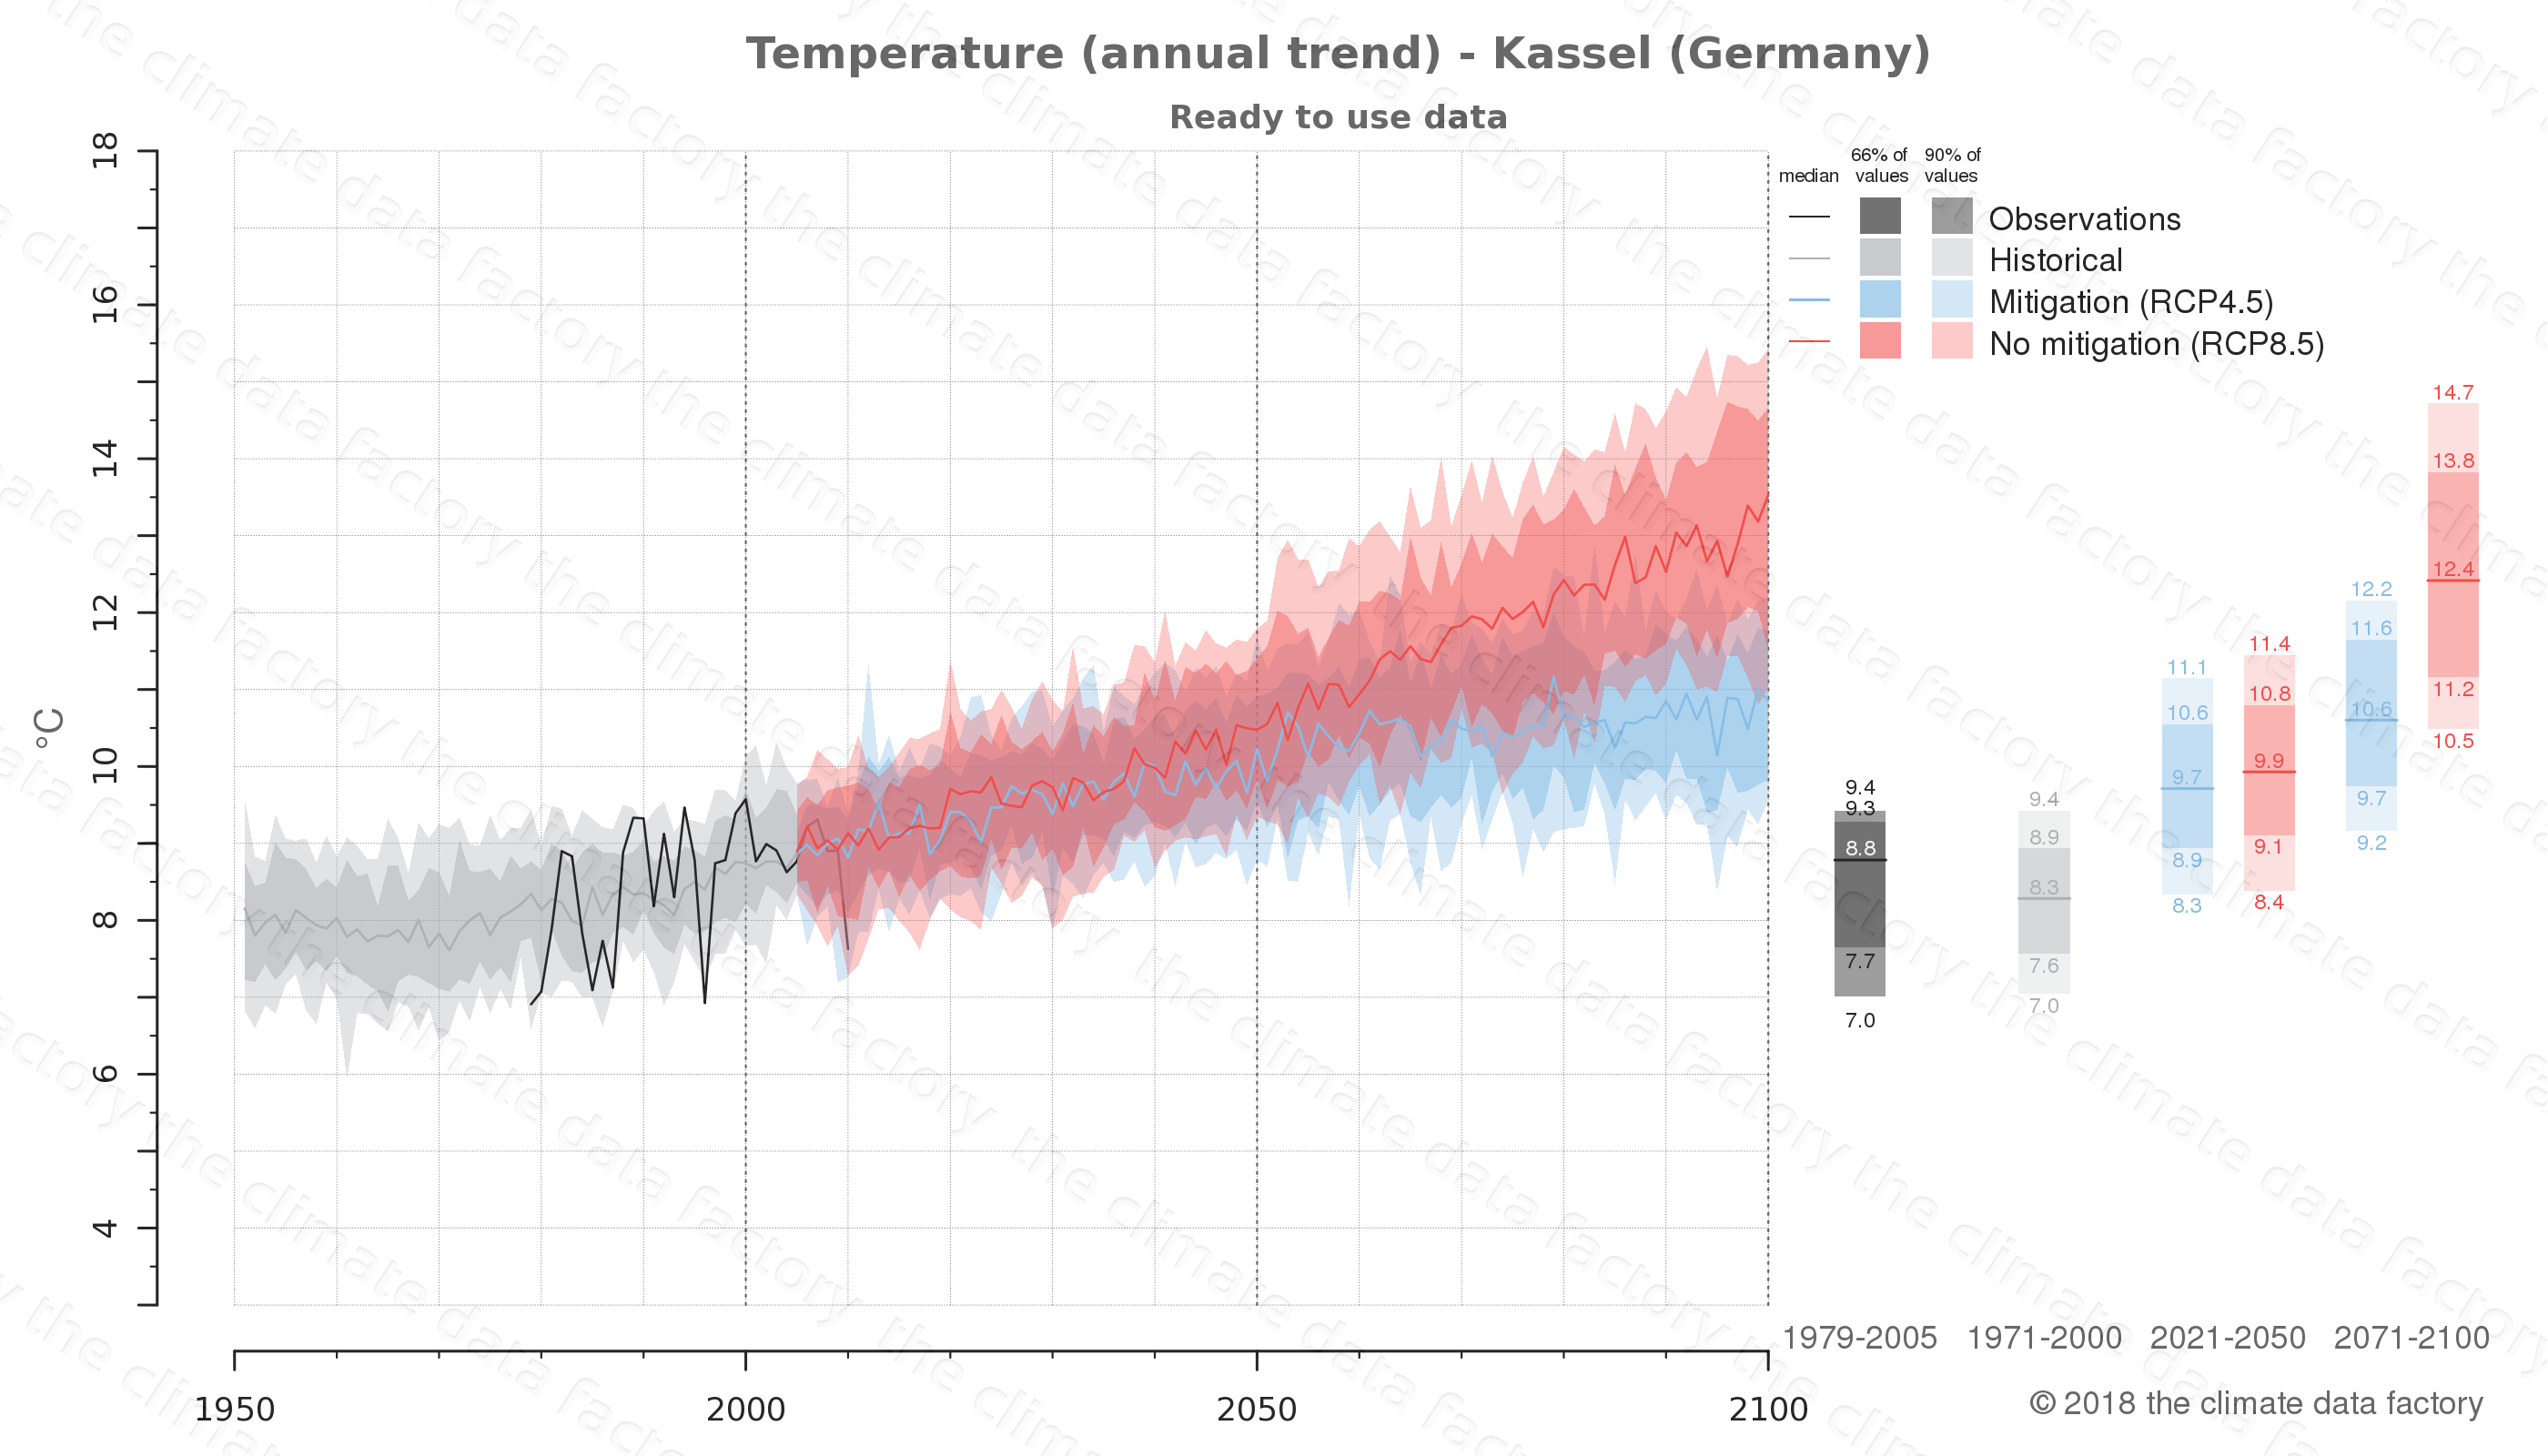 climate change data policy adaptation climate graph city data temperature kassel germany